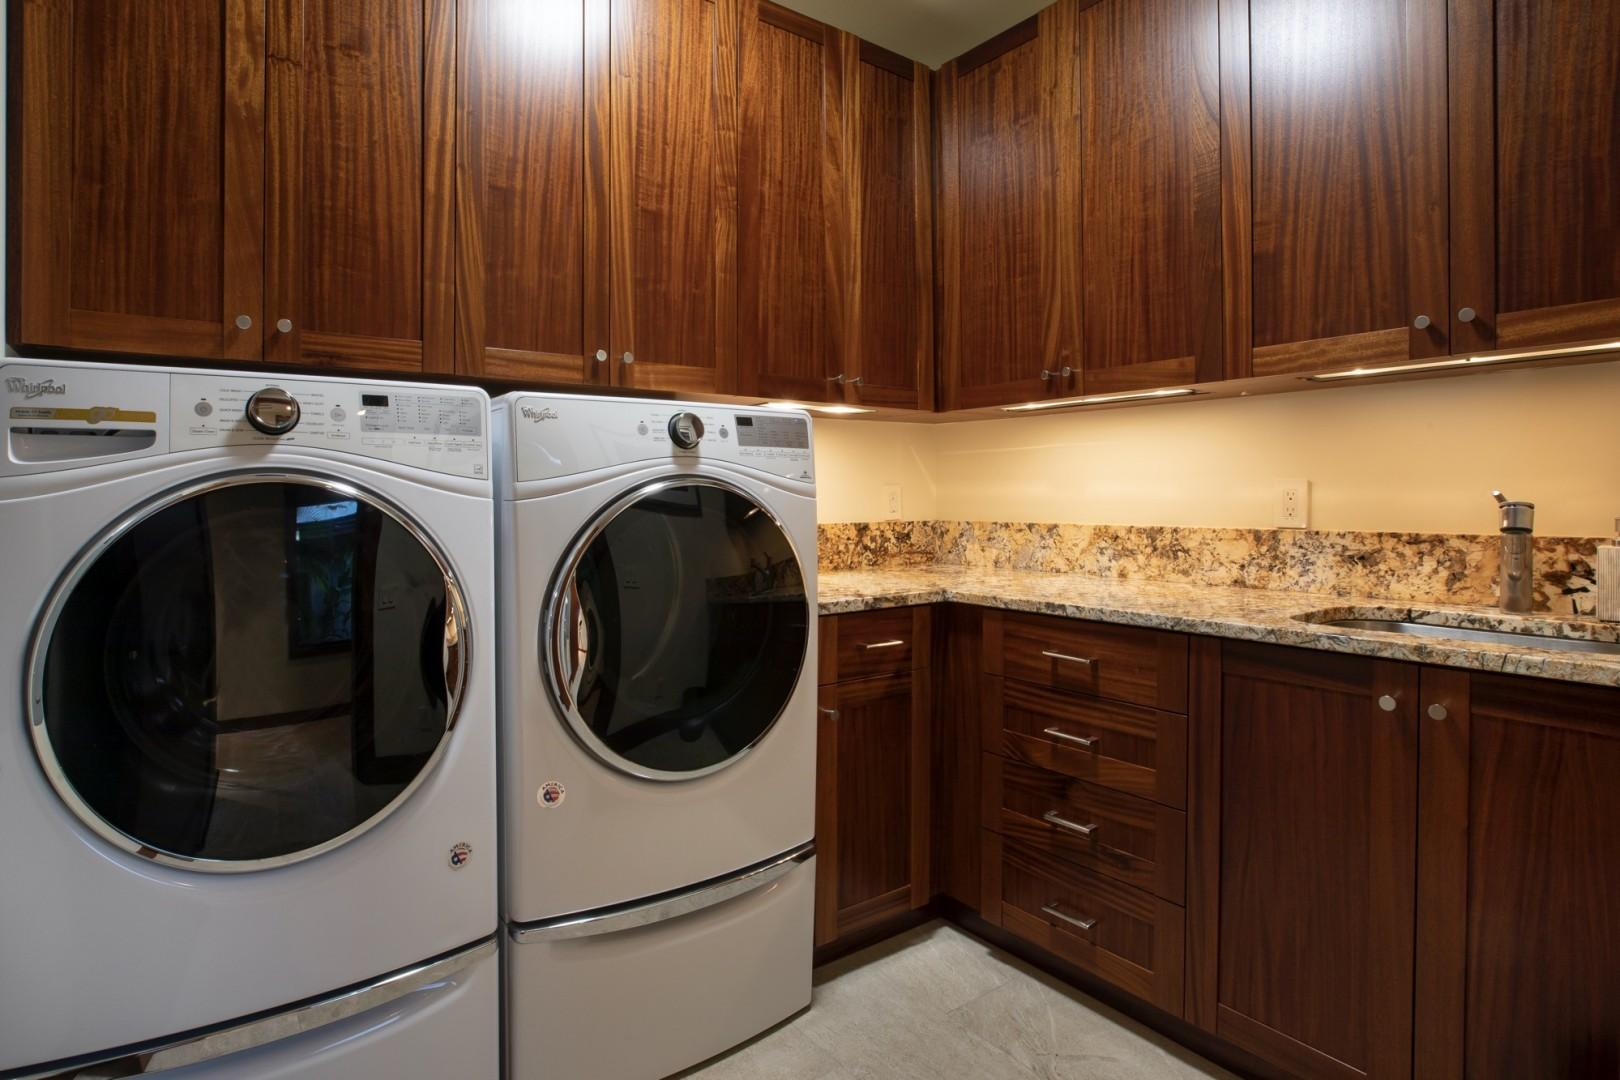 Dedicated laundry room with oversized Whirlpool washer and dryer, sink and ample counter prep space.